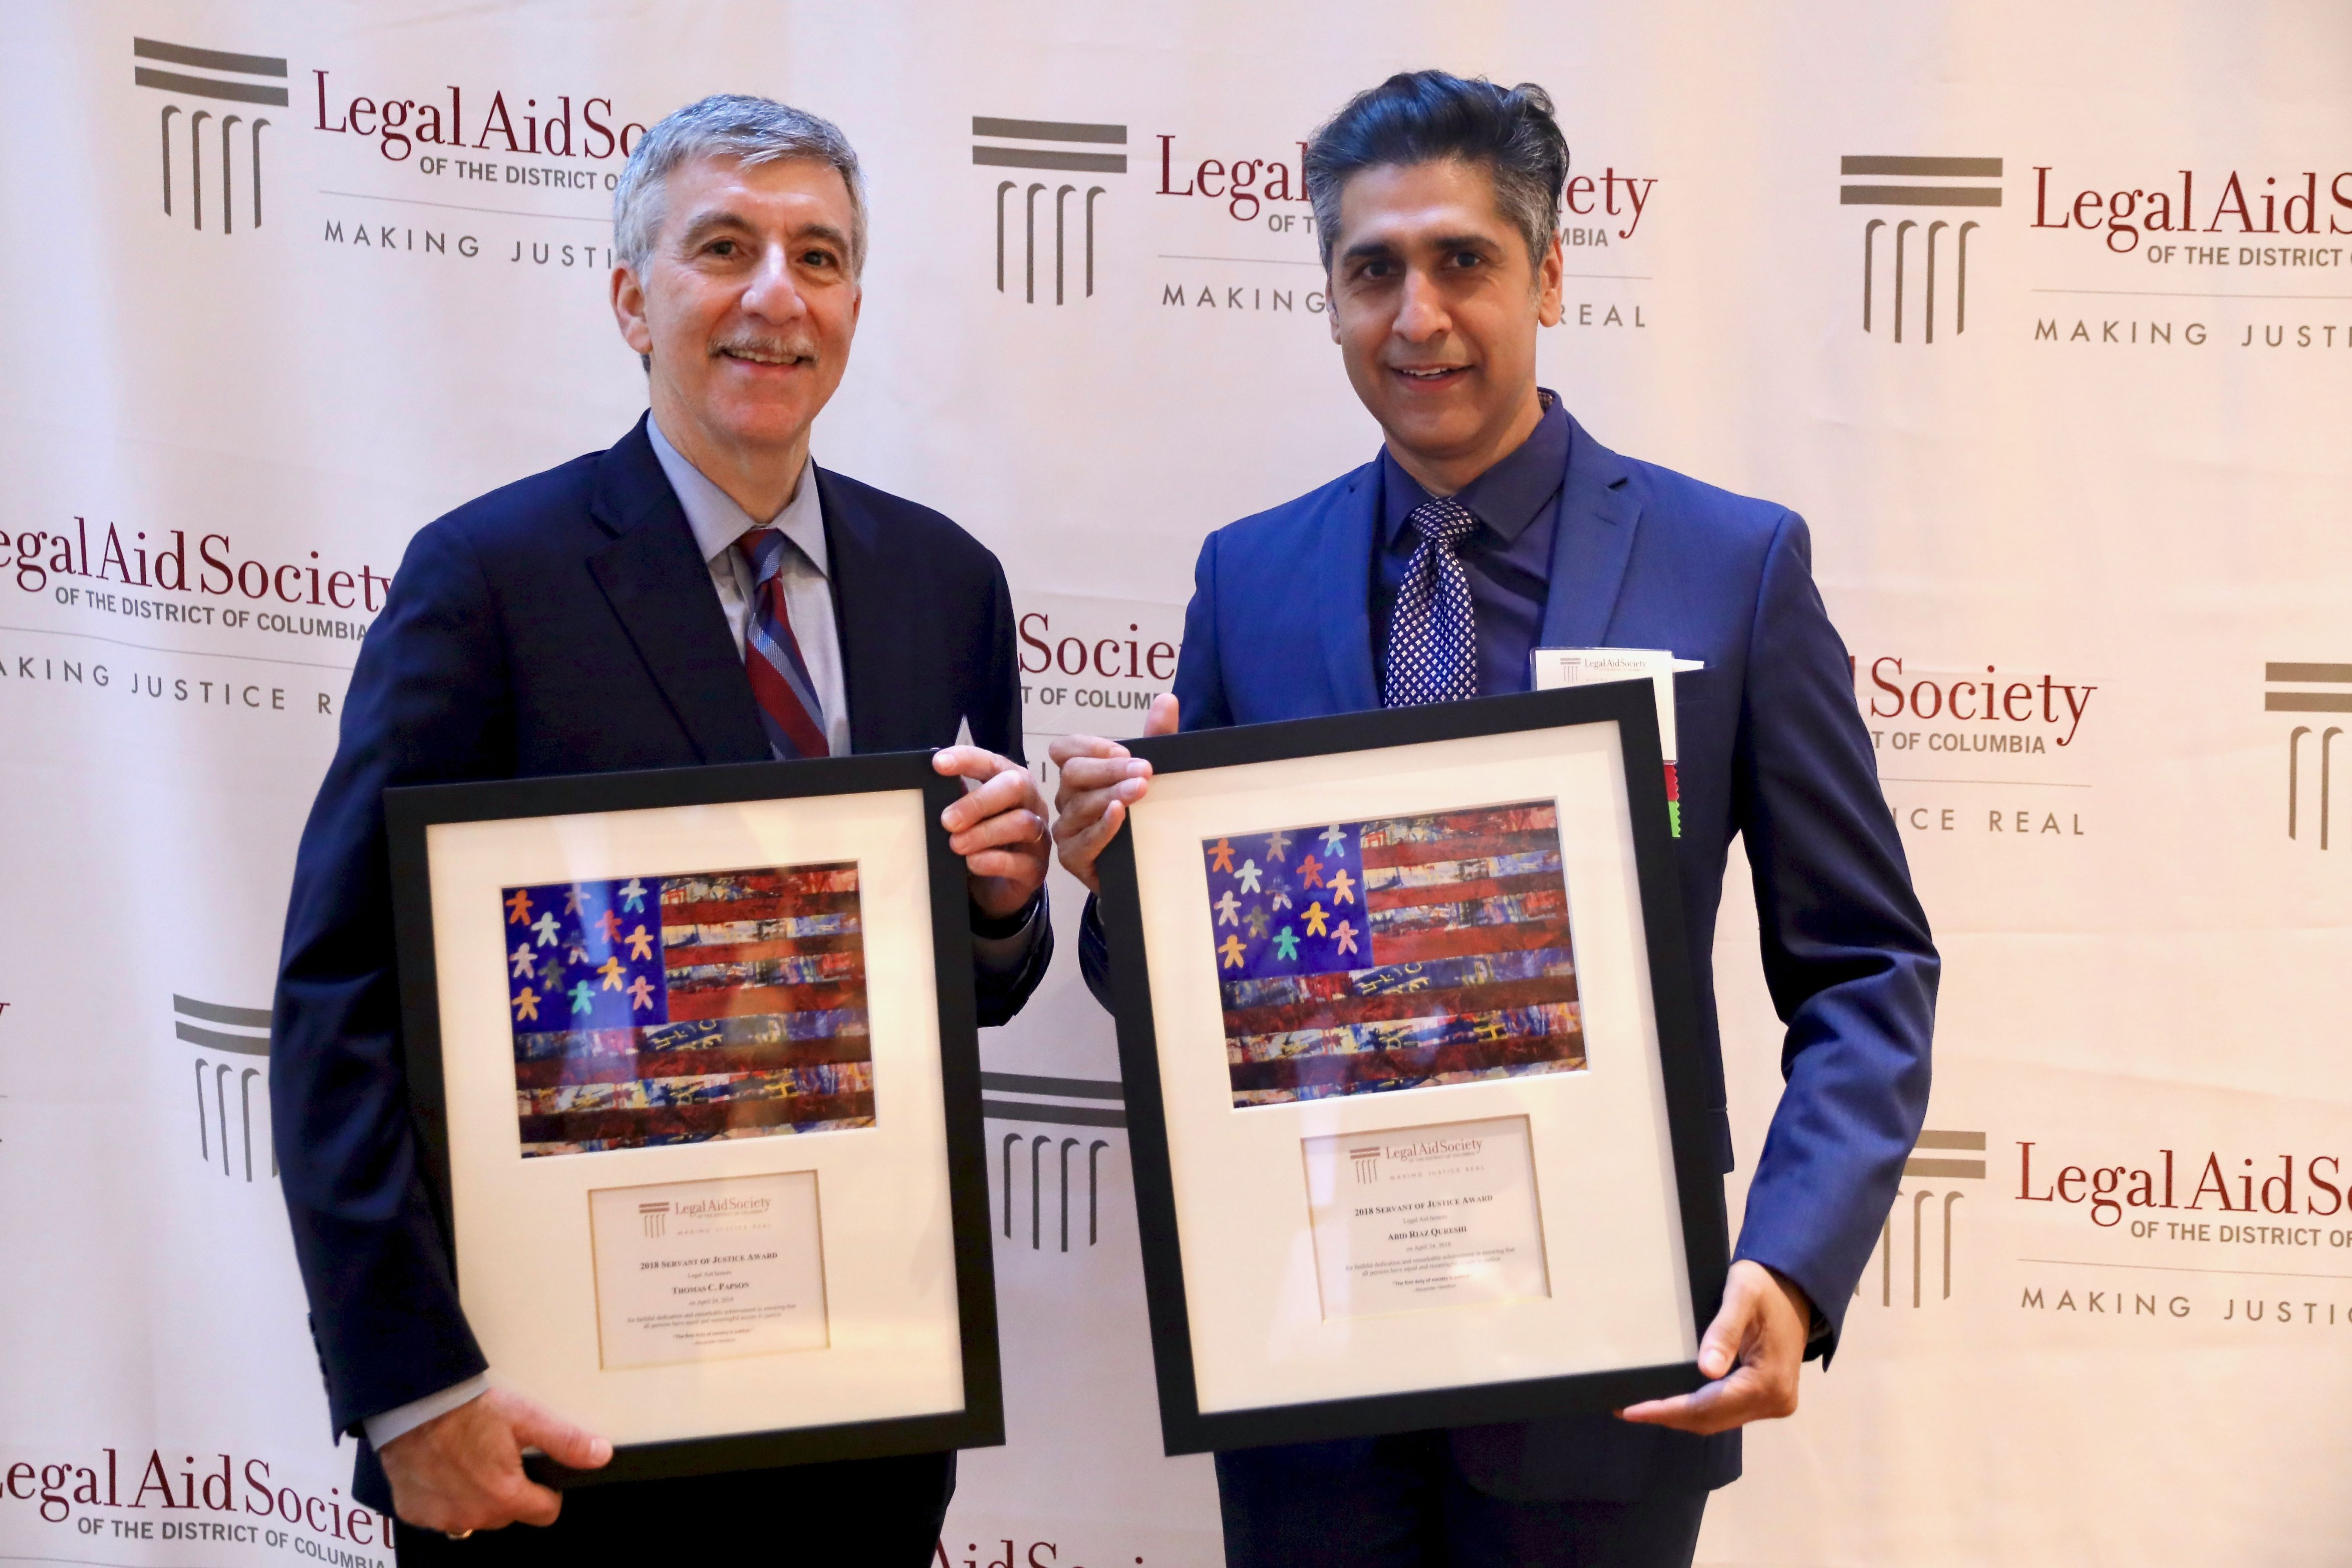 2018 Servant of Justice Honorees Thomas C. Papson of Legal Aid and Abid Riaz Qureshi of Latham & Watkins